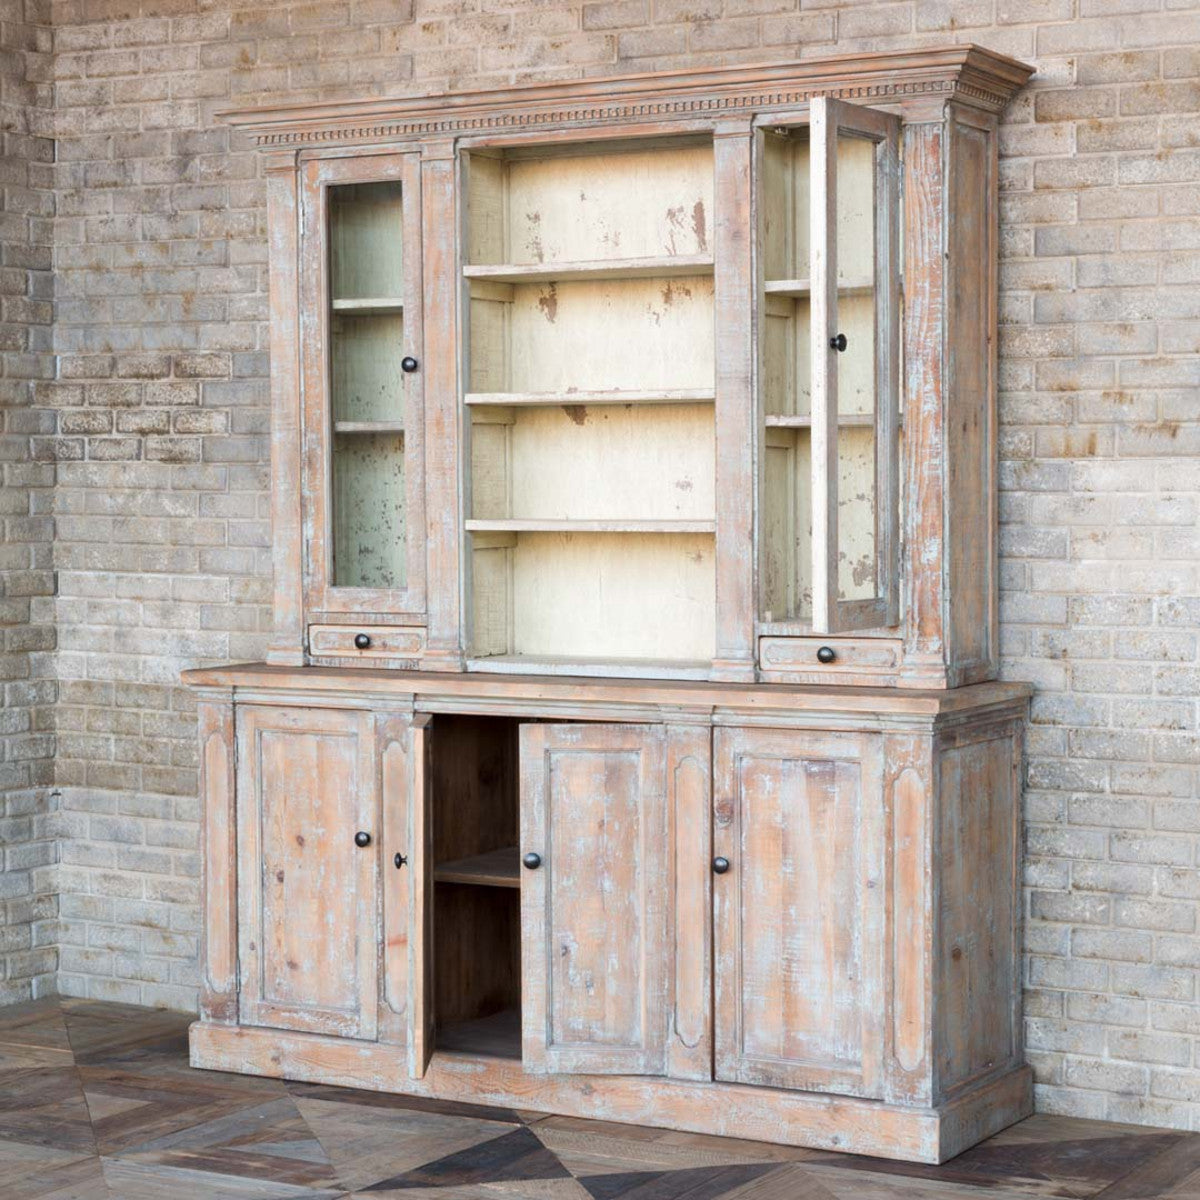 Old Southern Home China Cabinet-Furniture-Park Hill Collection-A Cottage in the City